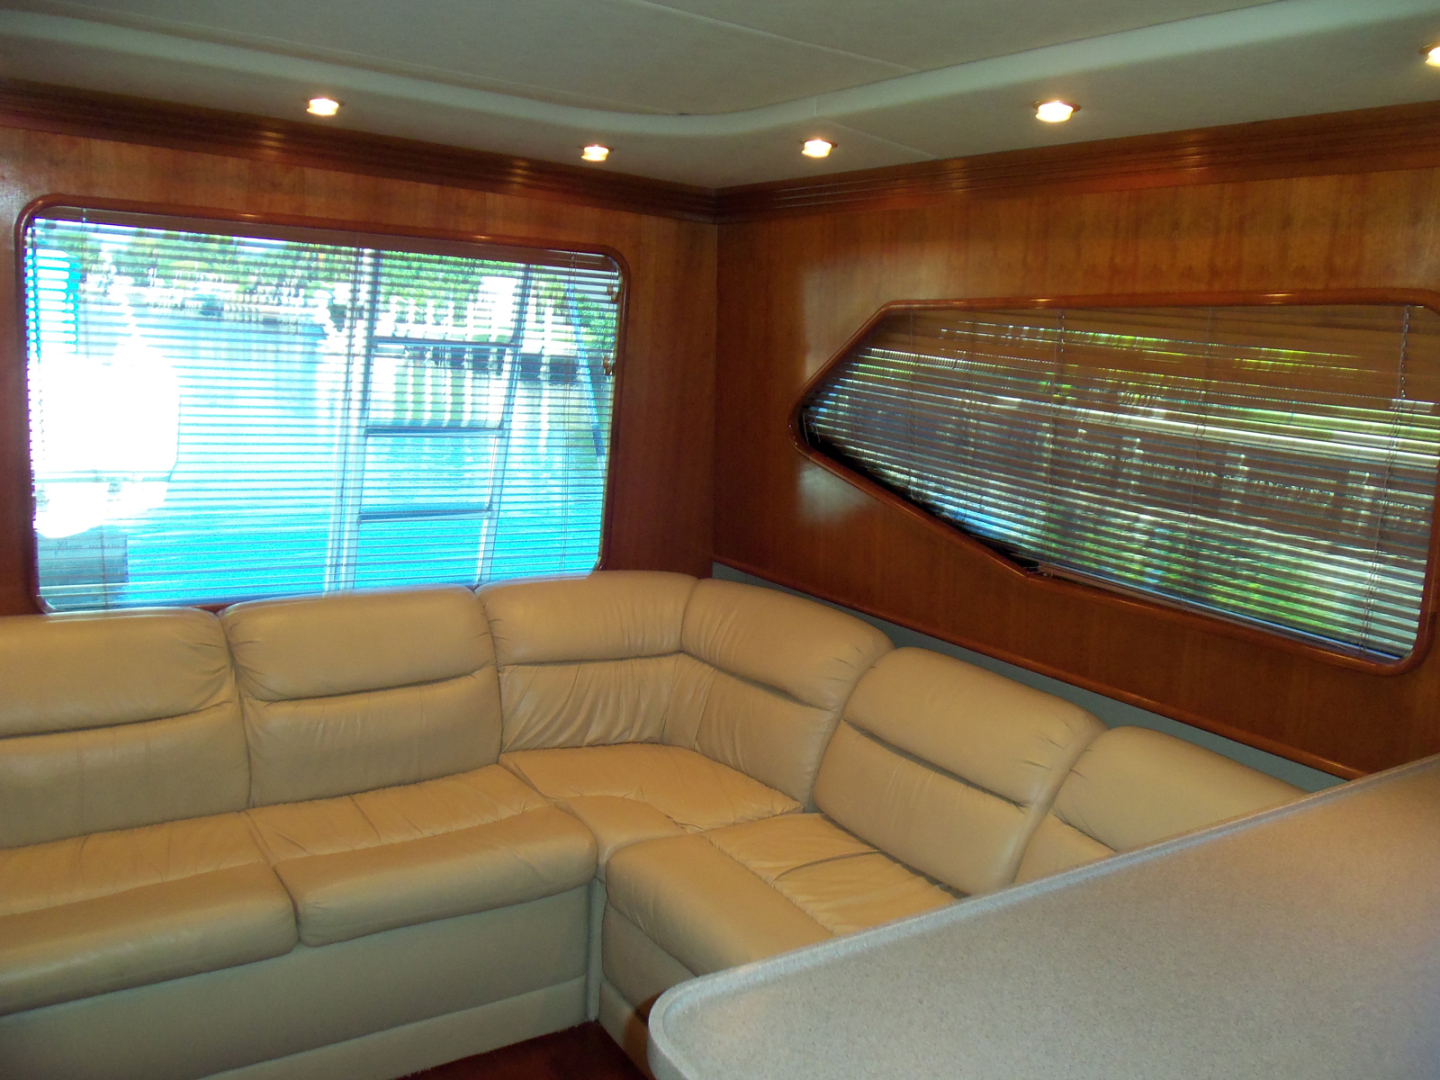 Rampage-45 SF 2004-MY DOLLY Ft. Lauderdale-Florida-United States-Salon Looking Aft-1563920 | Thumbnail